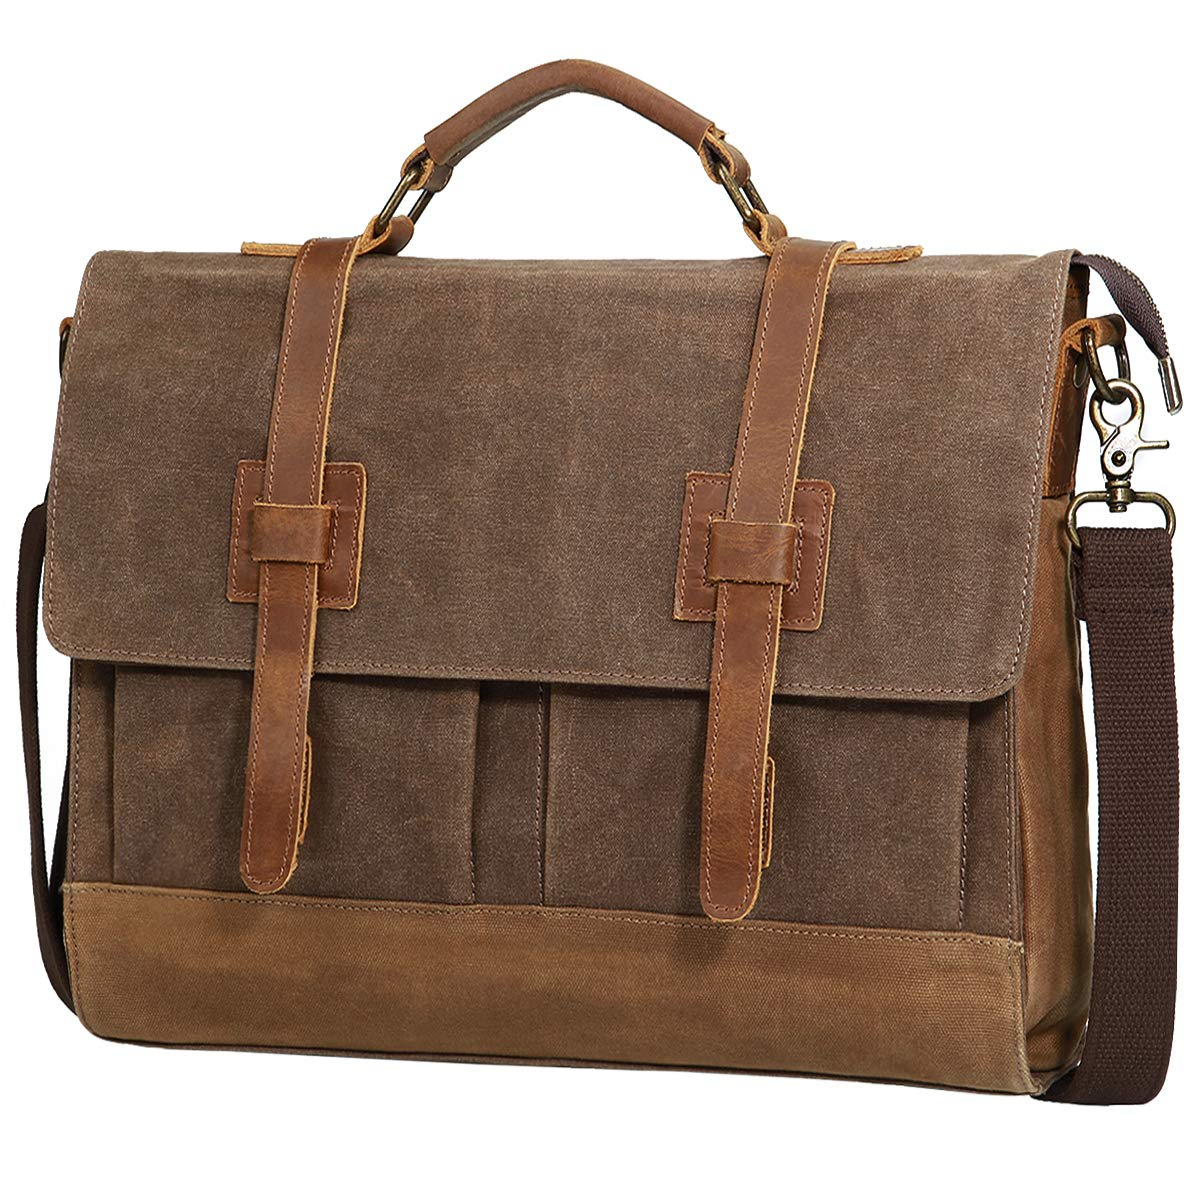 58f879169 Large Messenger Bag for Men Tocode, Vintage Waxed Canvas Satchel Leather  Briefcases Crossbody Shoulder Bags, 15.6 inch Computer Laptop Bags Water  Resistant ...